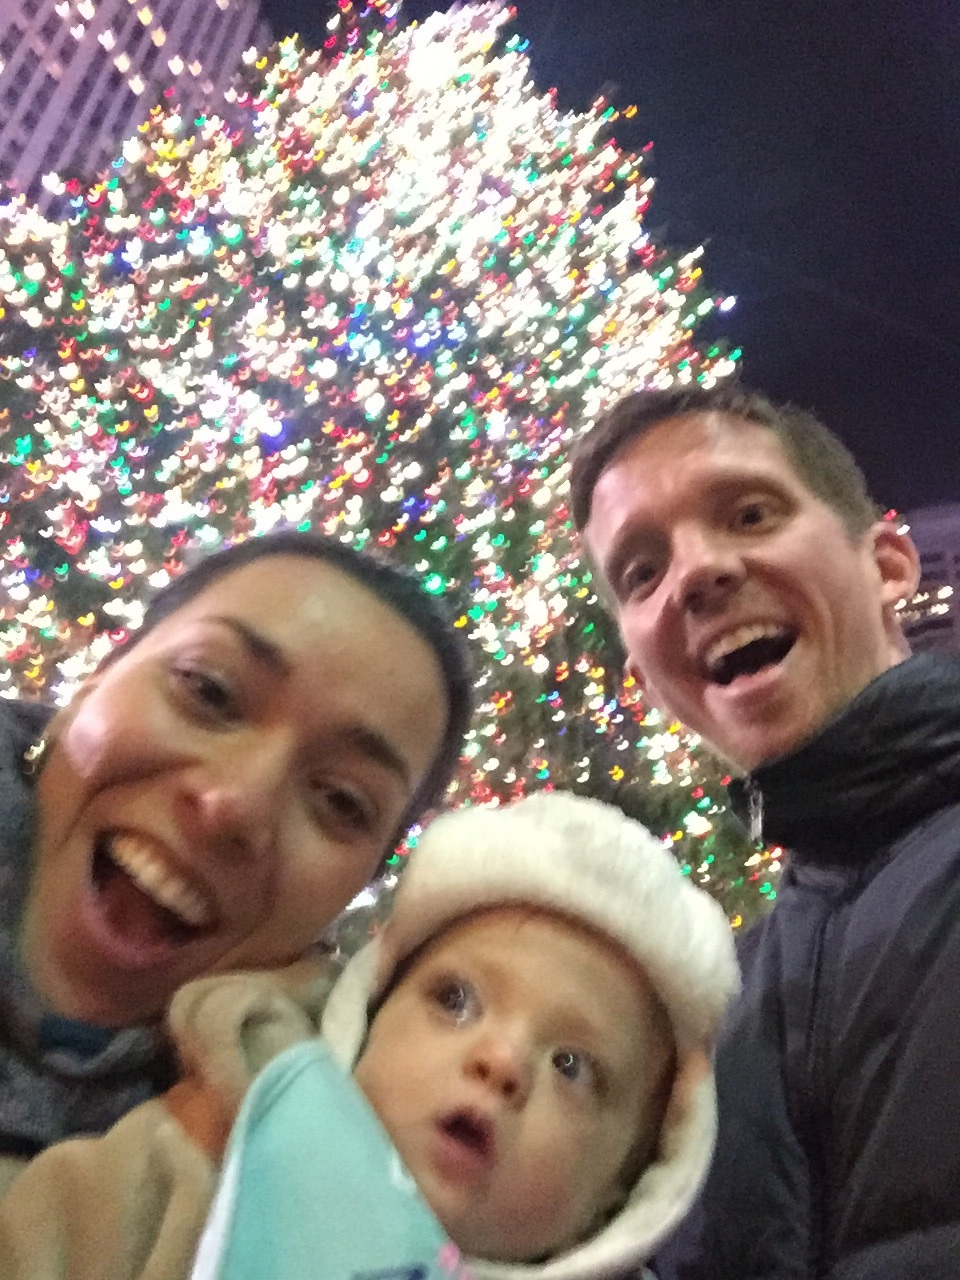 Blurry selfie at Rockefeller Center